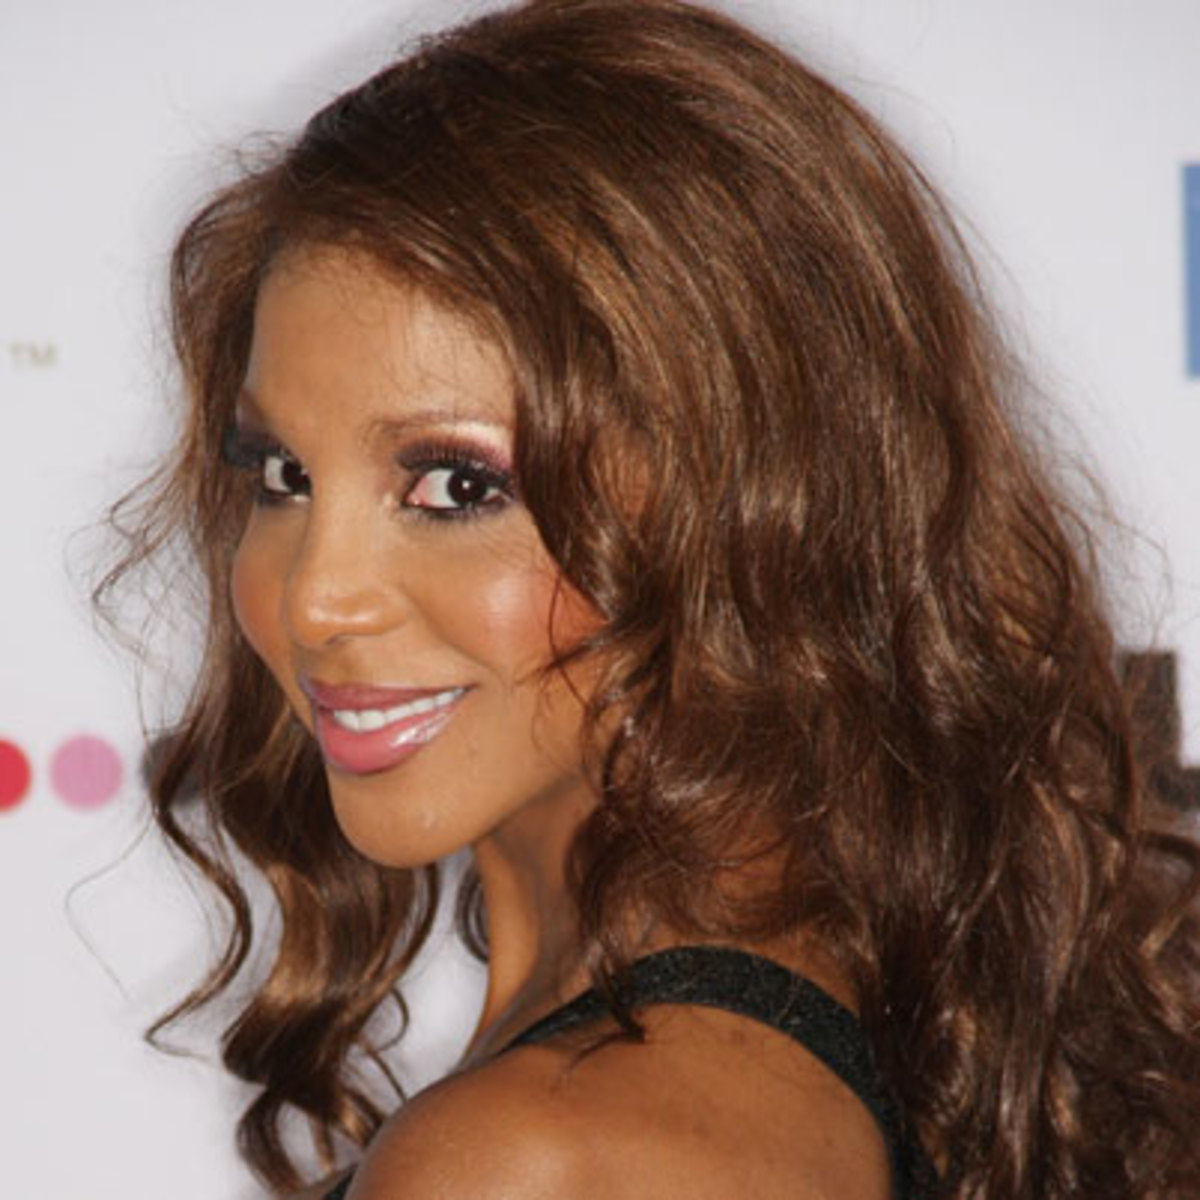 Toni Braxton Celebrated Her BFF, Bille Woodruff's Birthday With A Sweet Message - Read It Here